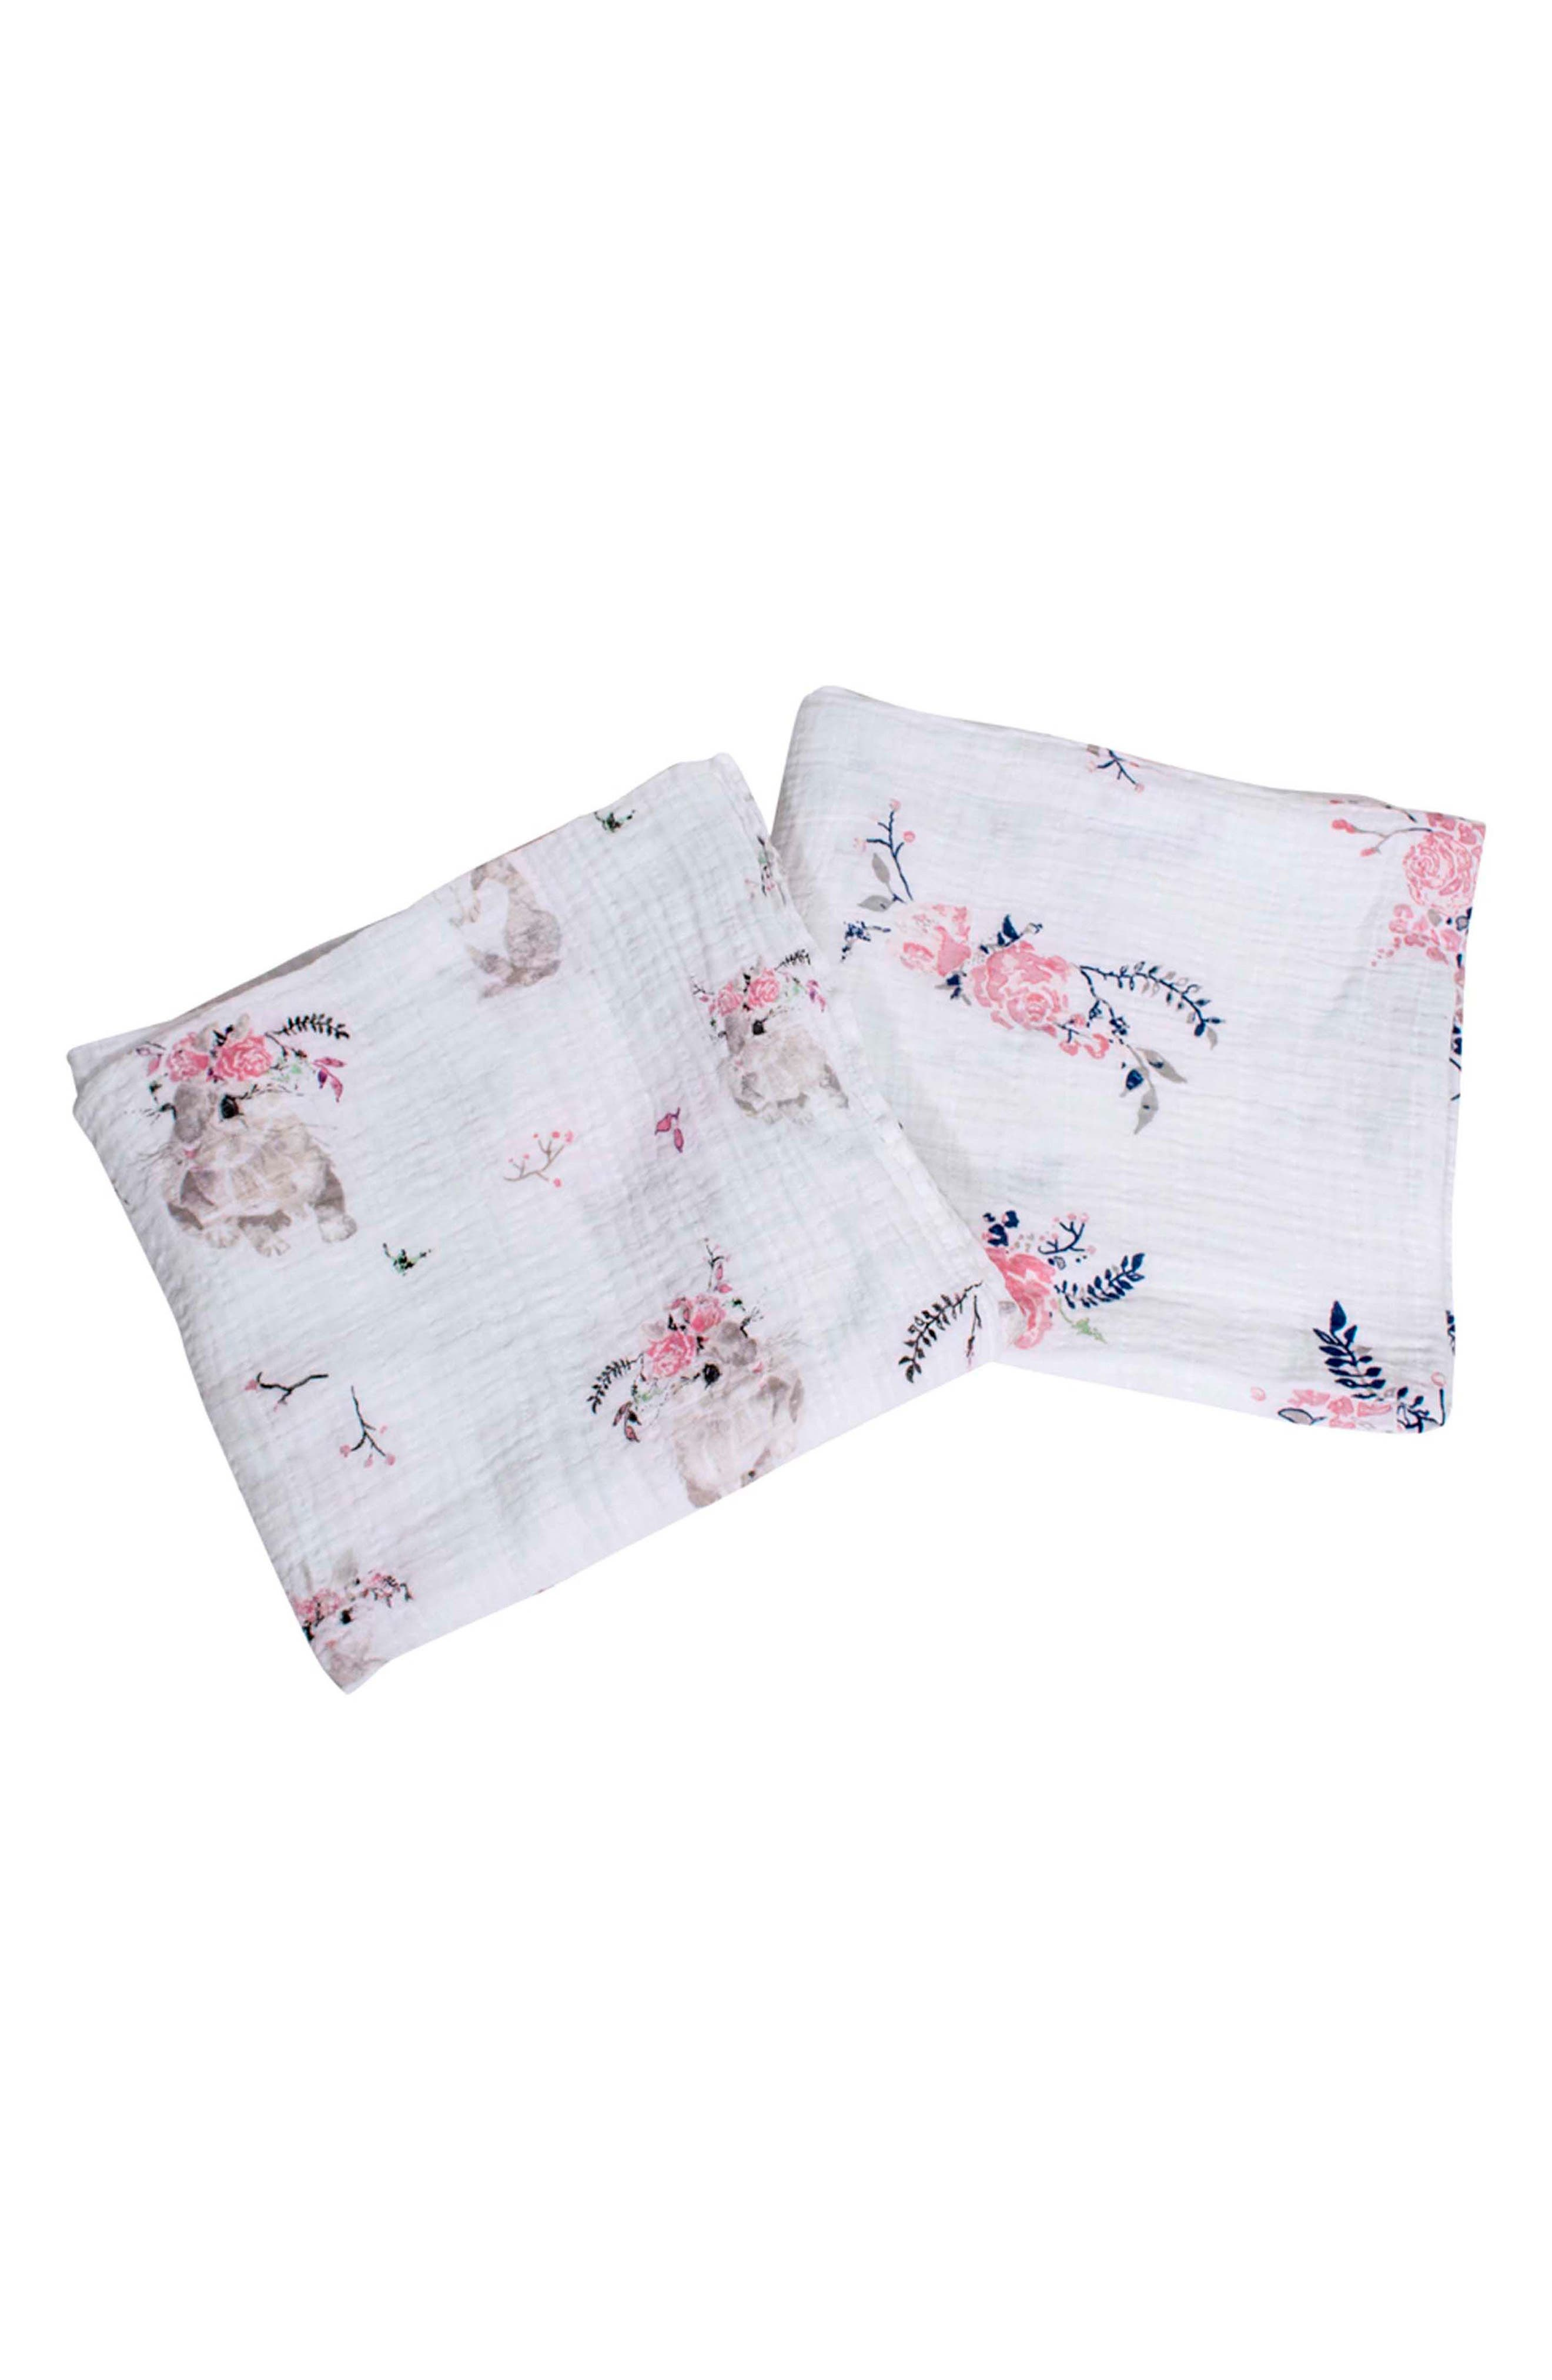 Classic 2-Pack Muslin Swaddle Blankets,                             Main thumbnail 1, color,                             BUNNY TAILS/ GARLAND